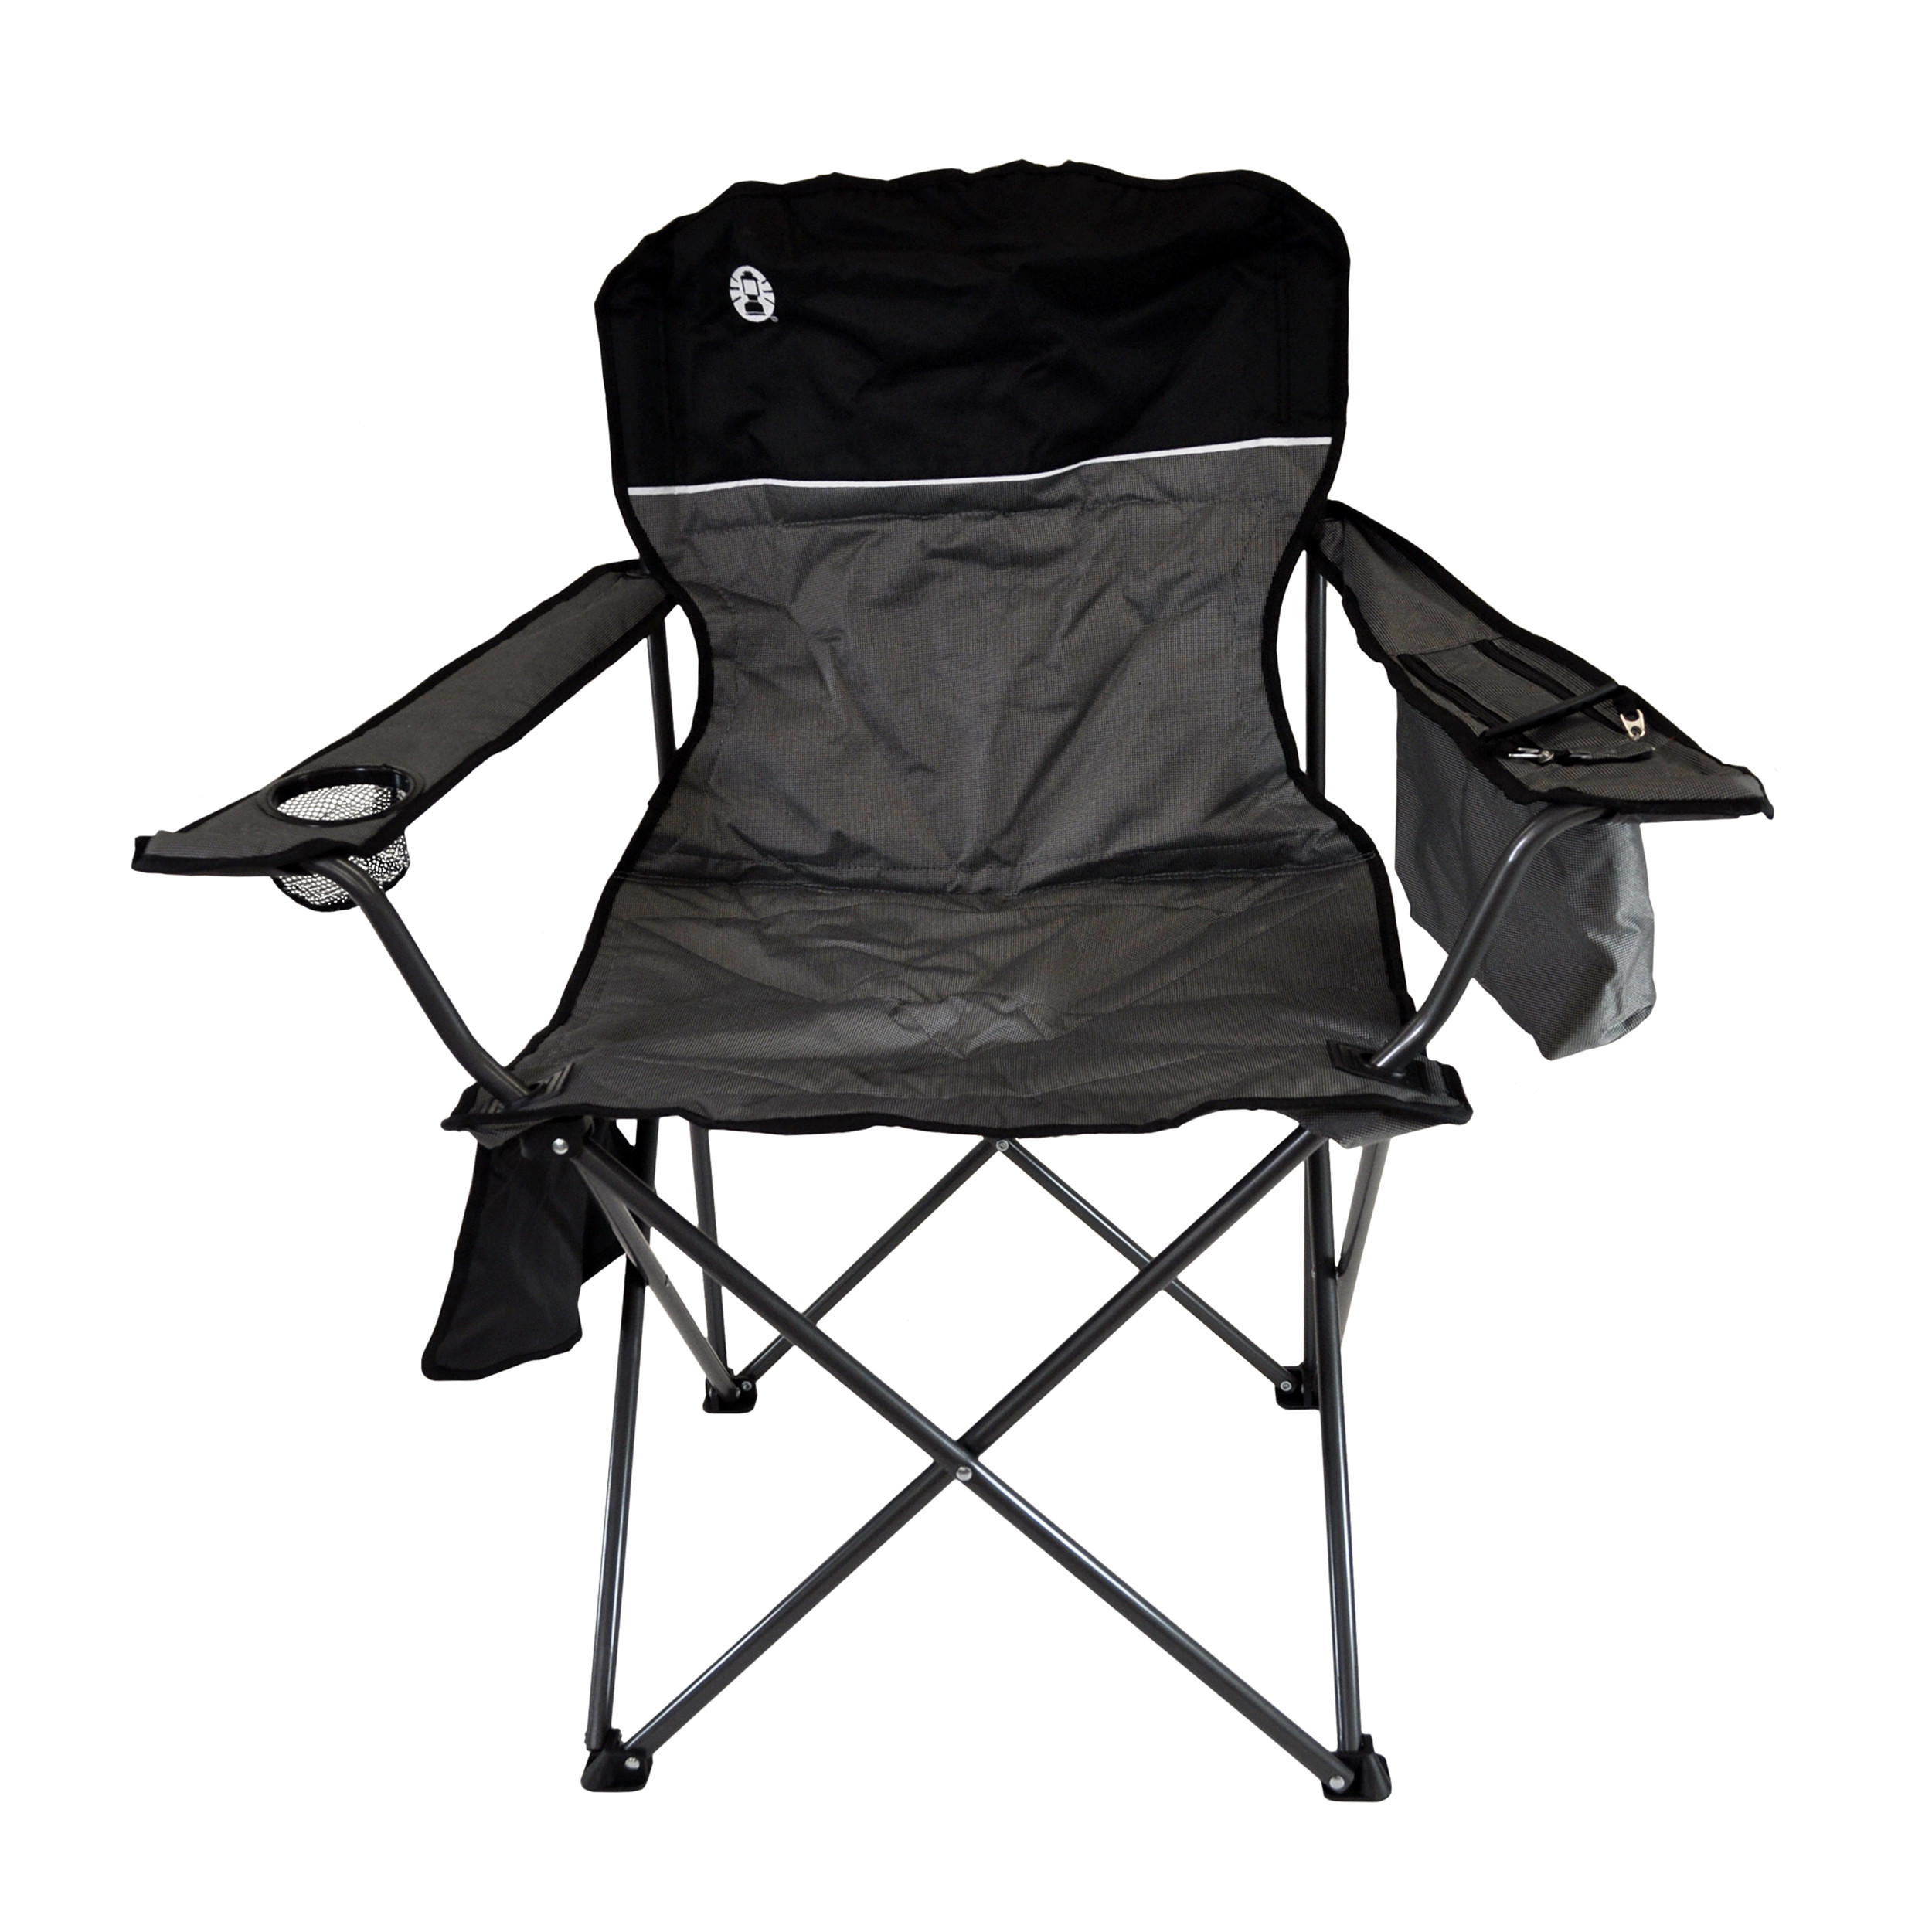 Best ideas about Coleman Oversized Quad Chair With Cooler . Save or Pin Coleman Chair Quad Cooler C006 Now.